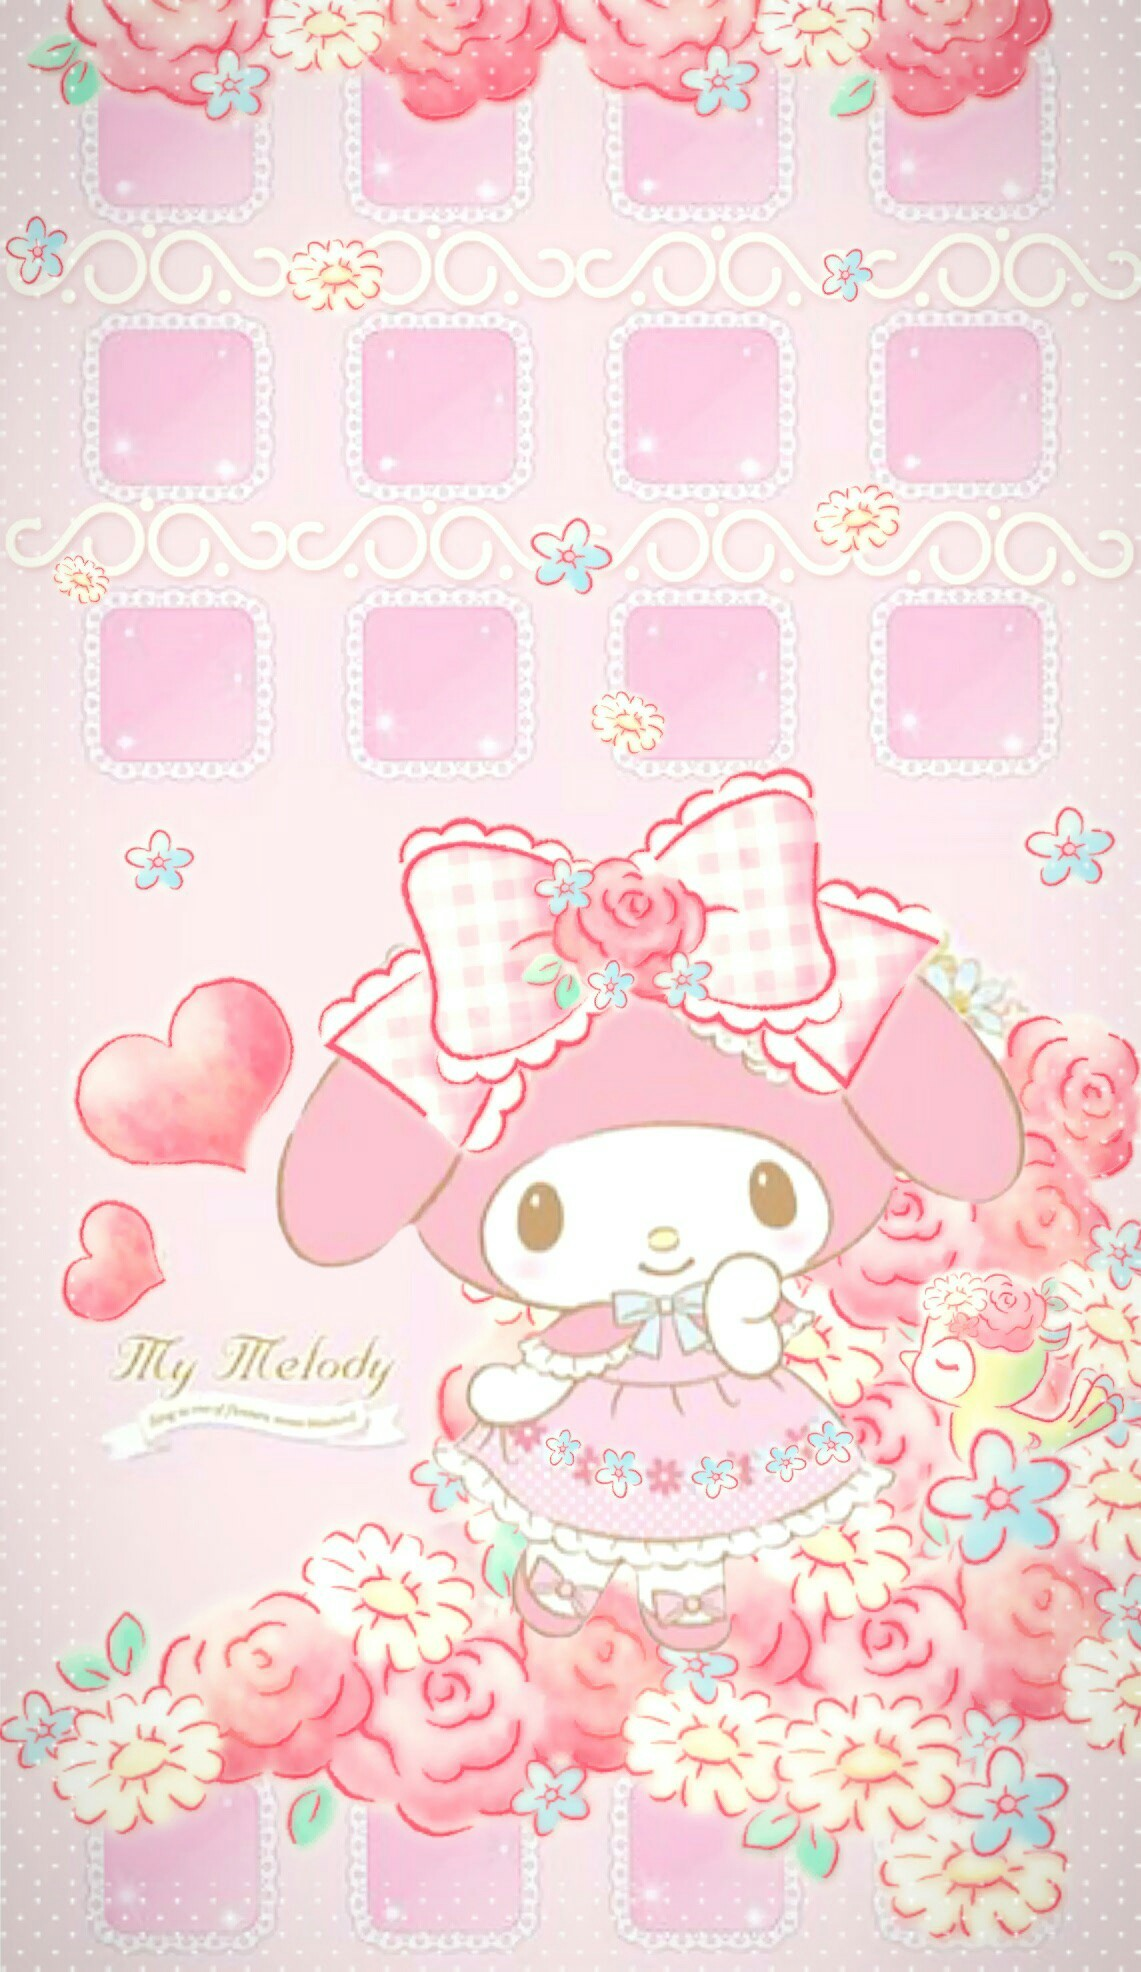 my melody wallpaper for iphone 76 images